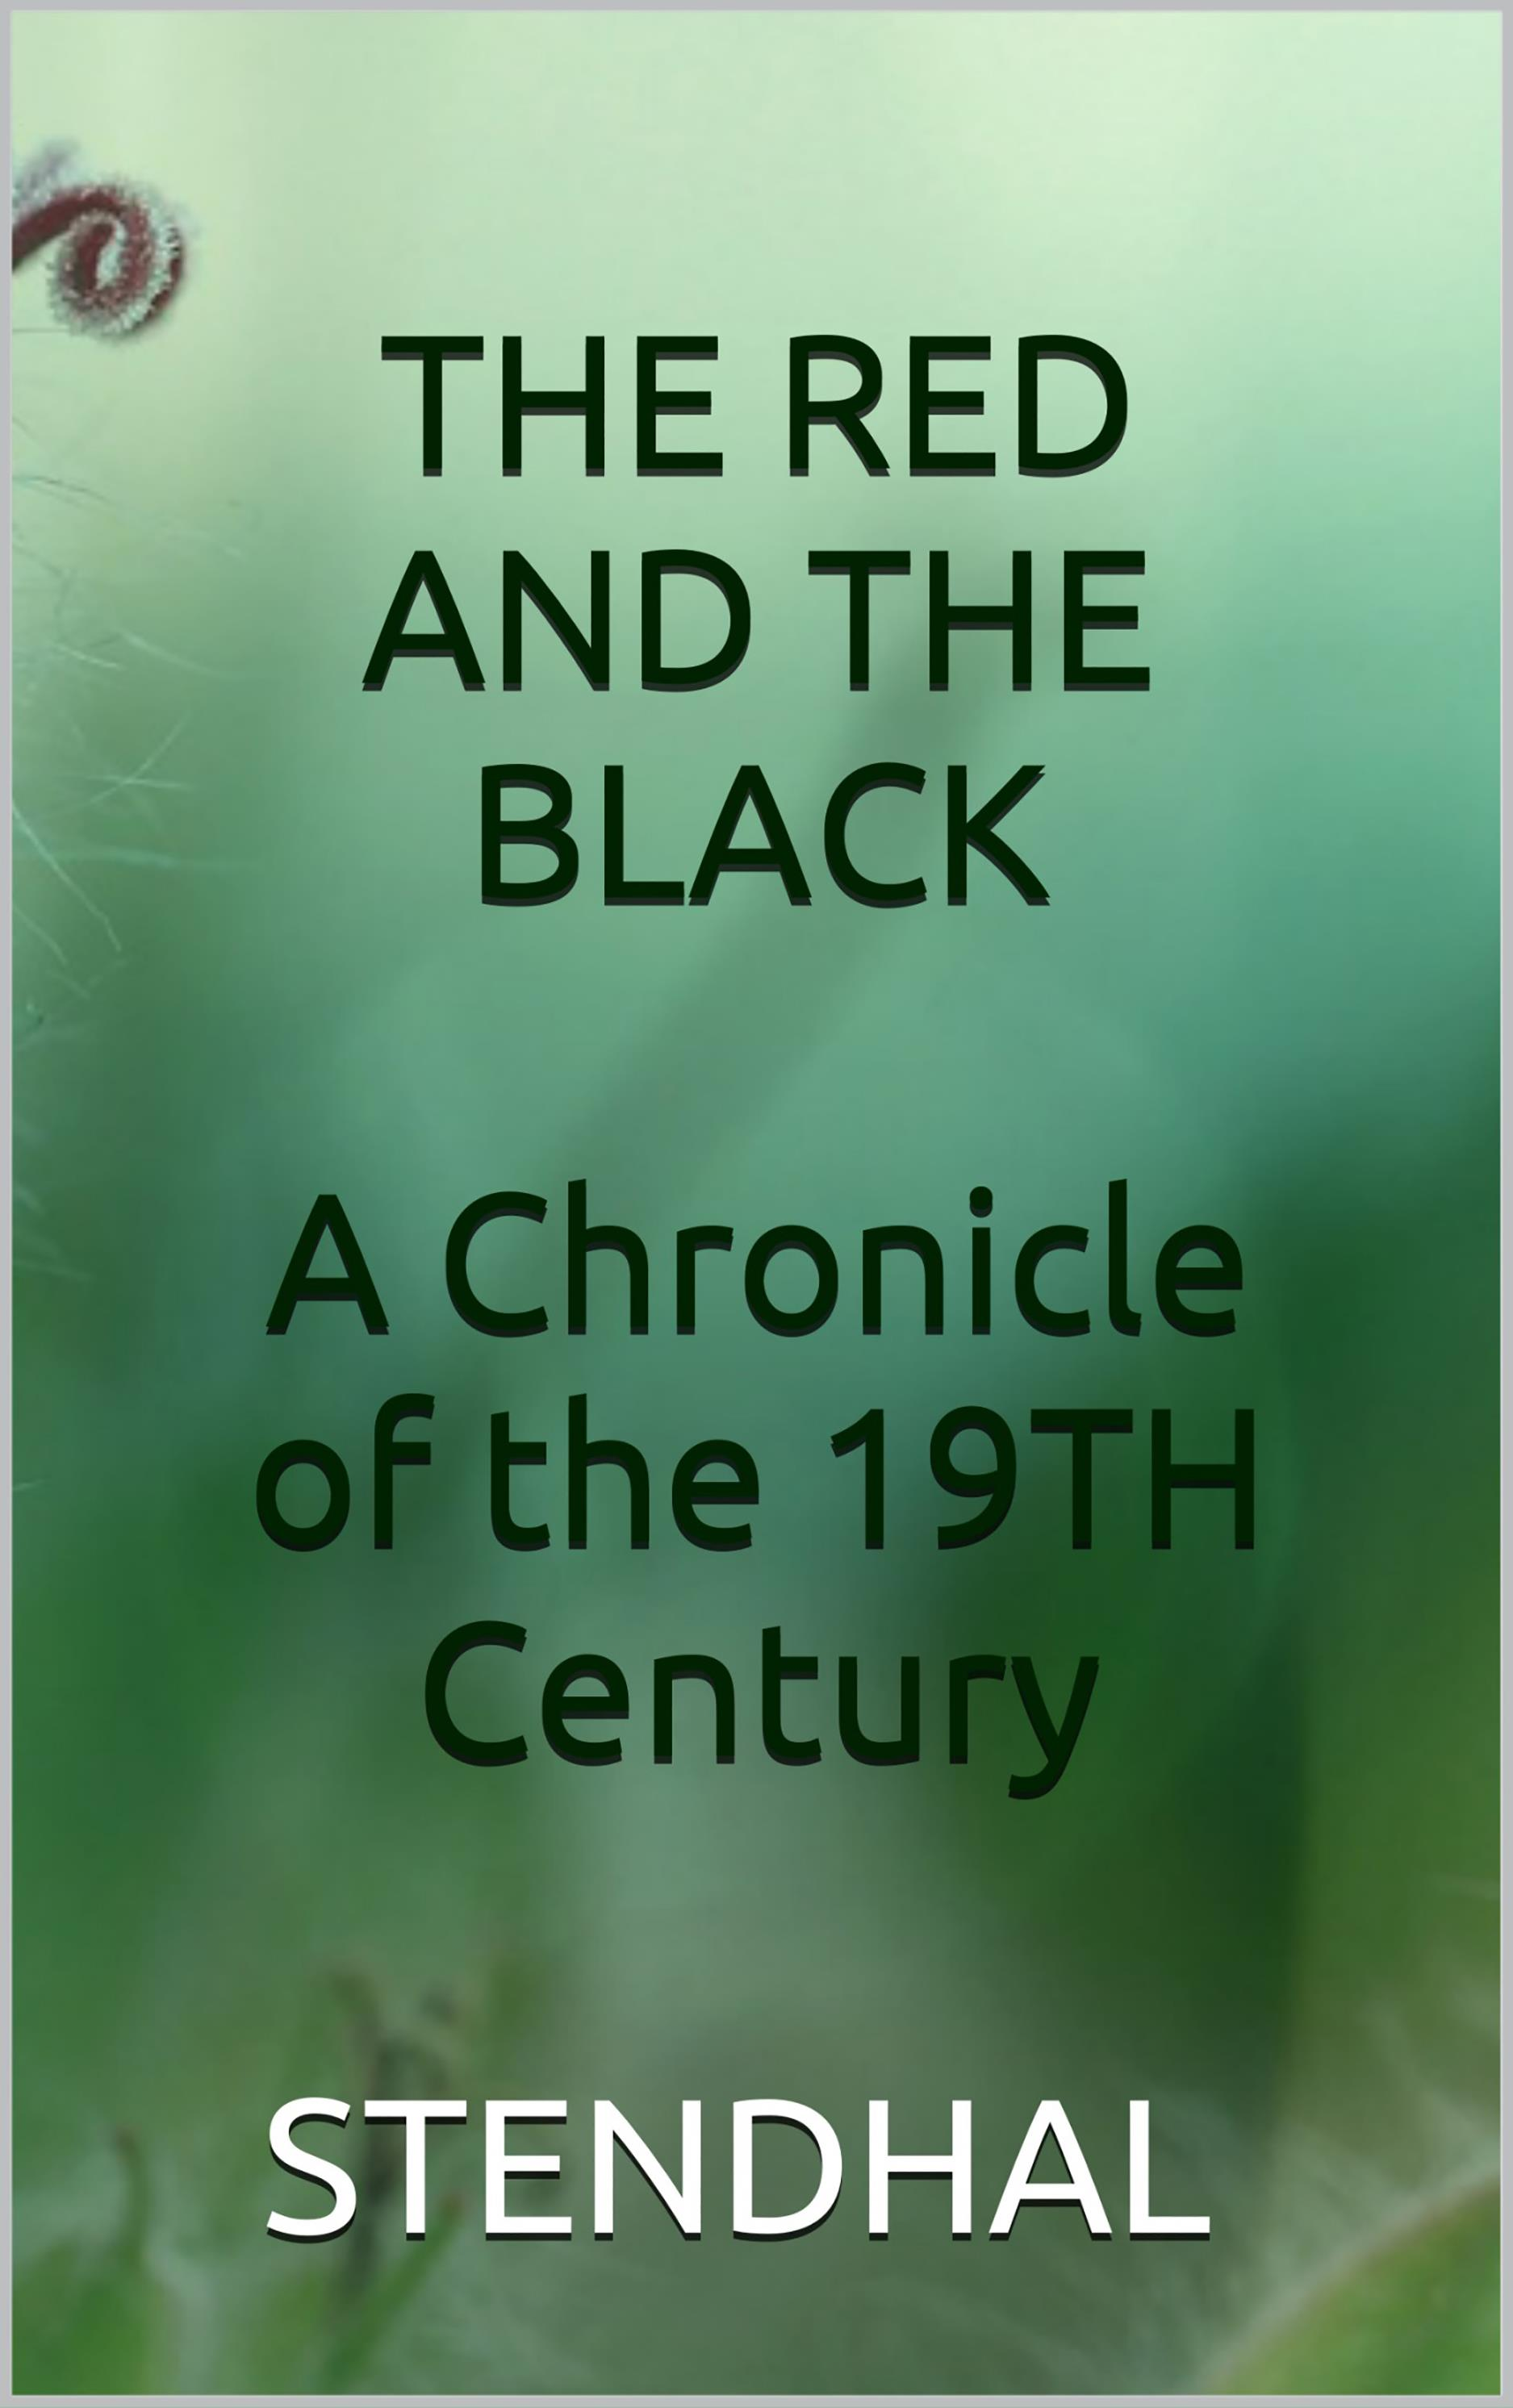 The red and the black - A chronicle of the 19th century